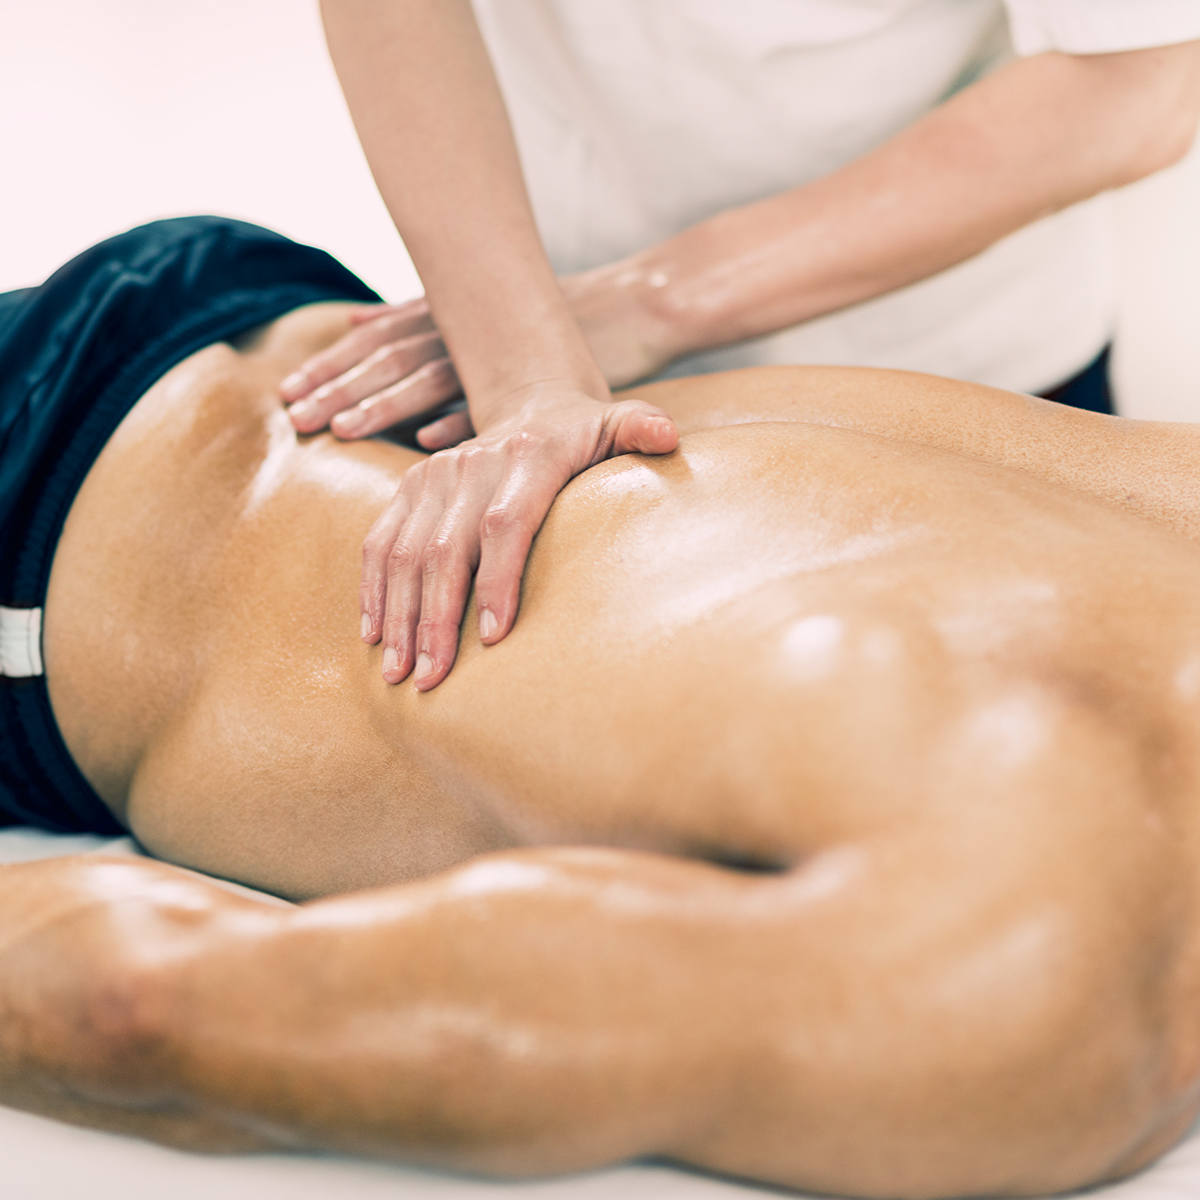 Massage Therapy performed by a registered massage therapist